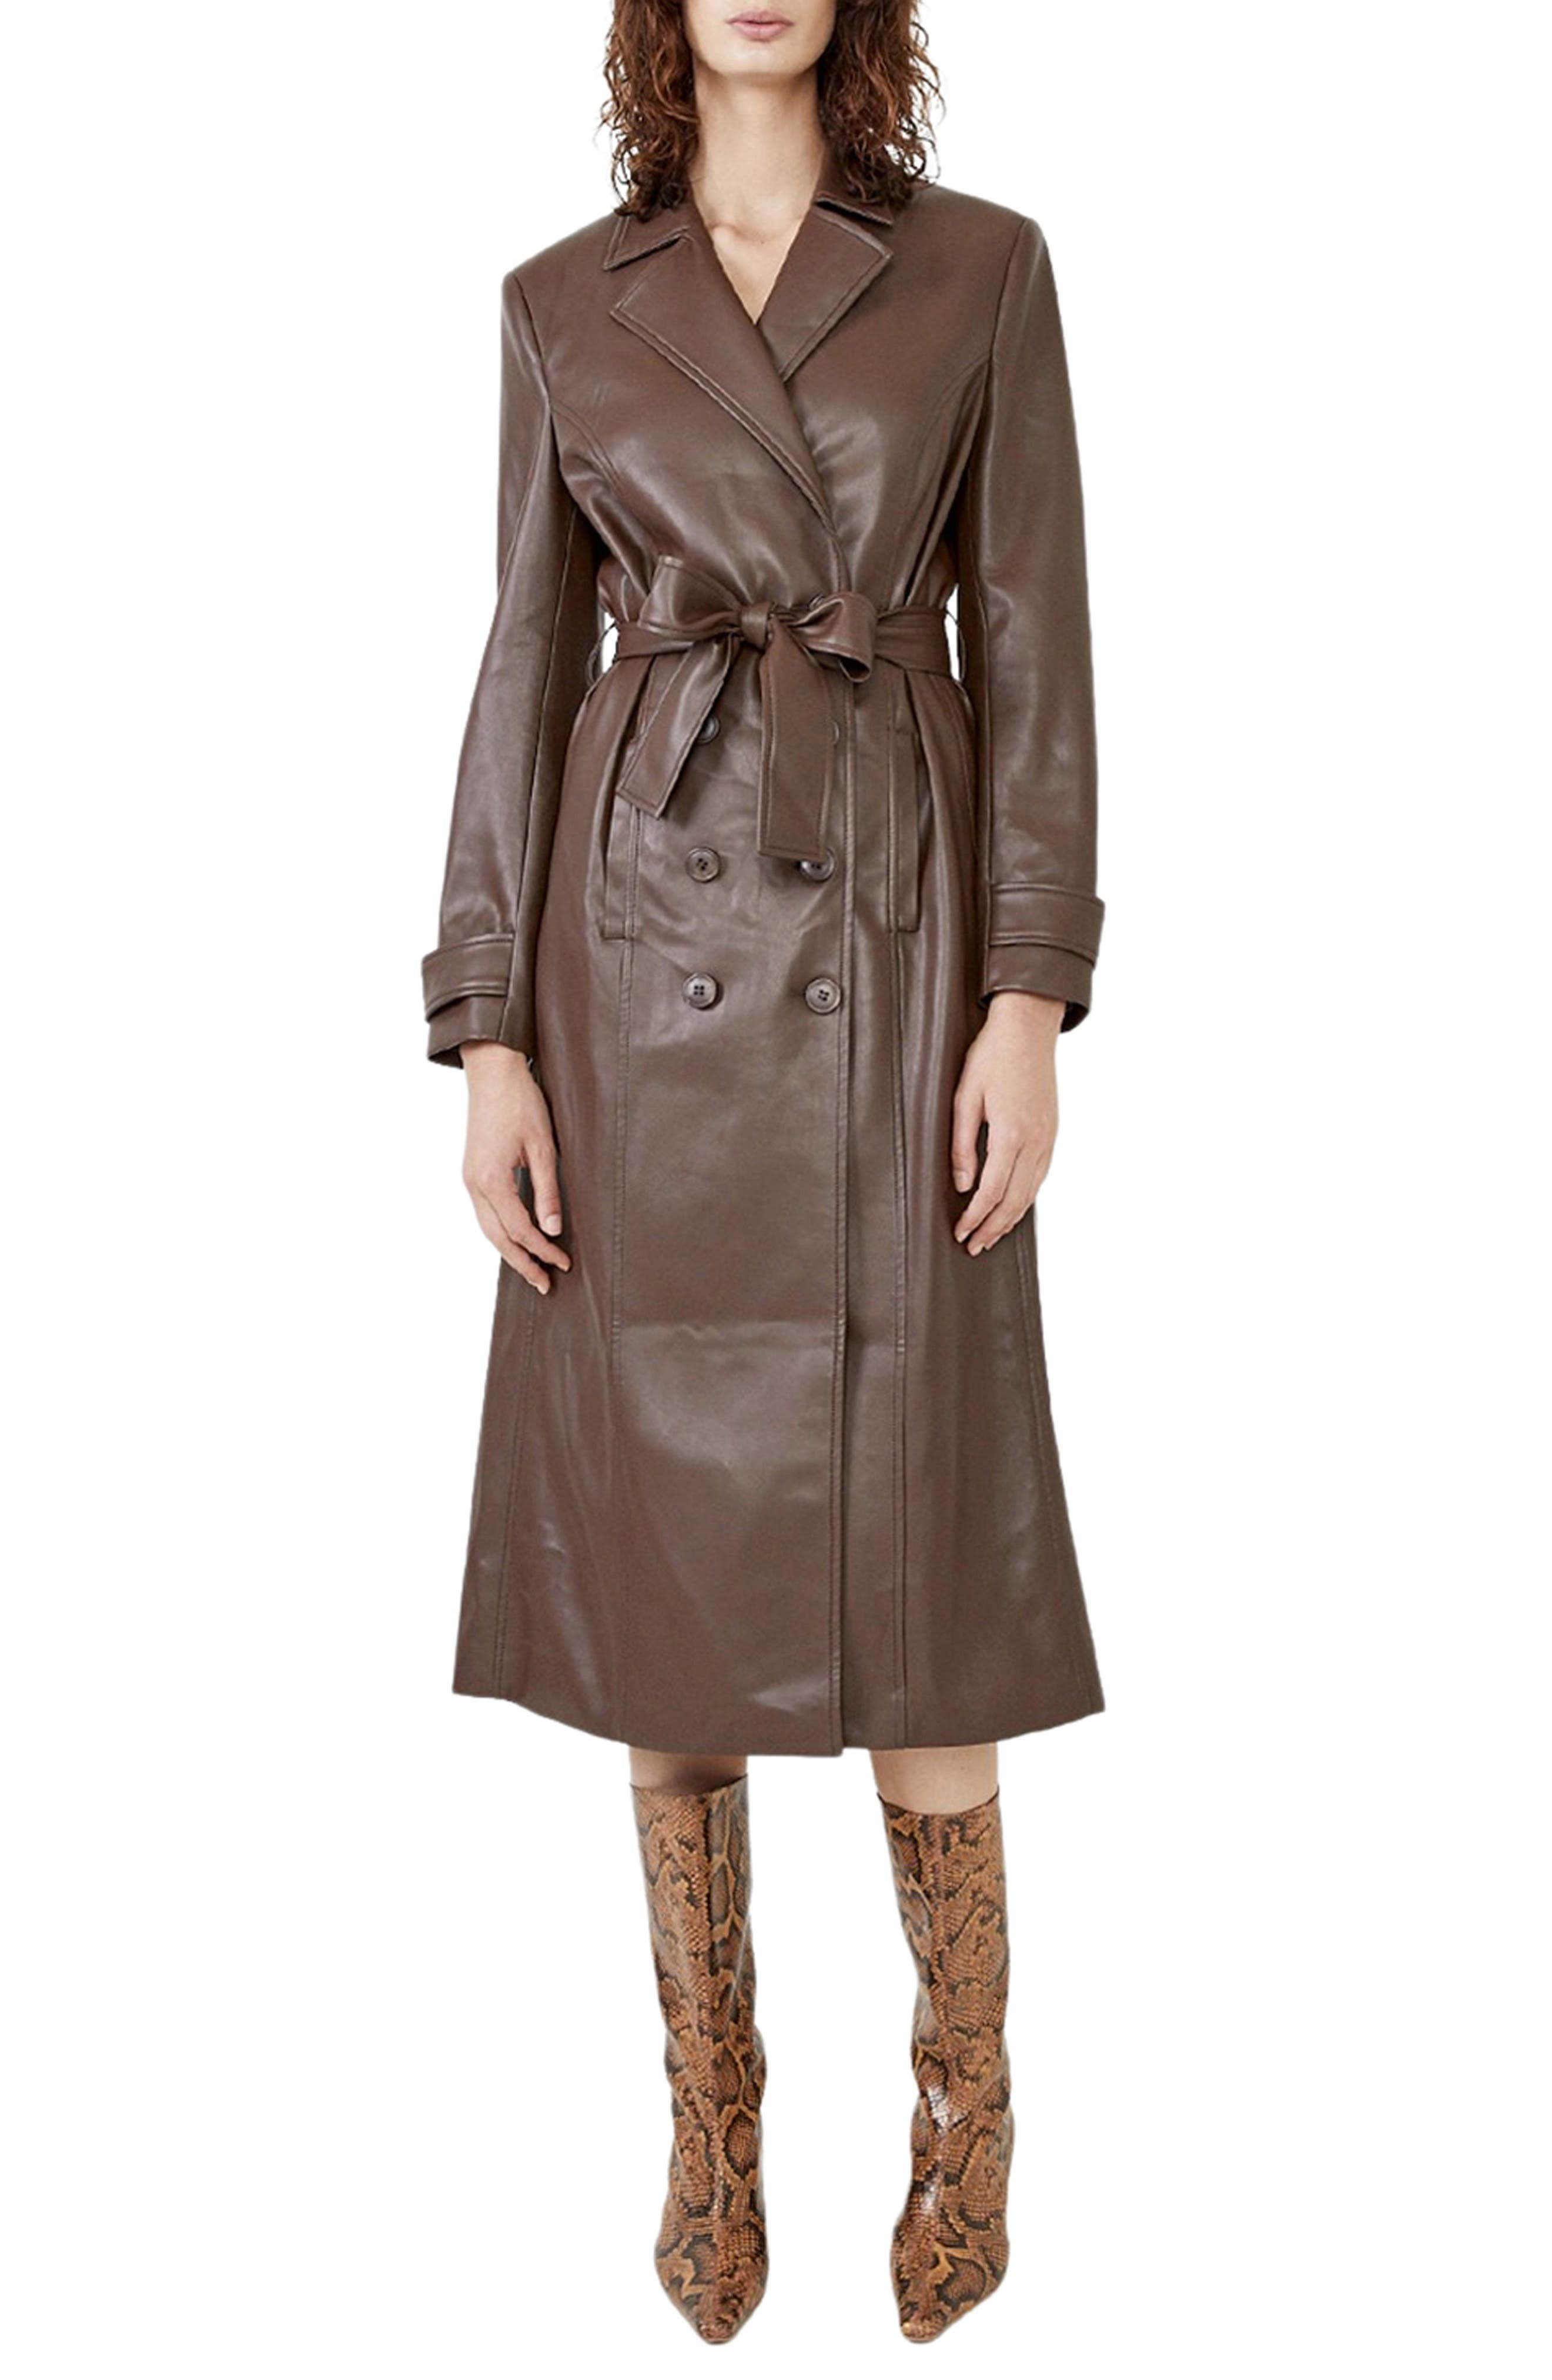 70s Clothes | Hippie Clothes & Outfits Womens Bardot Faux Leather Trench Coat Size Large - Brown $199.00 AT vintagedancer.com